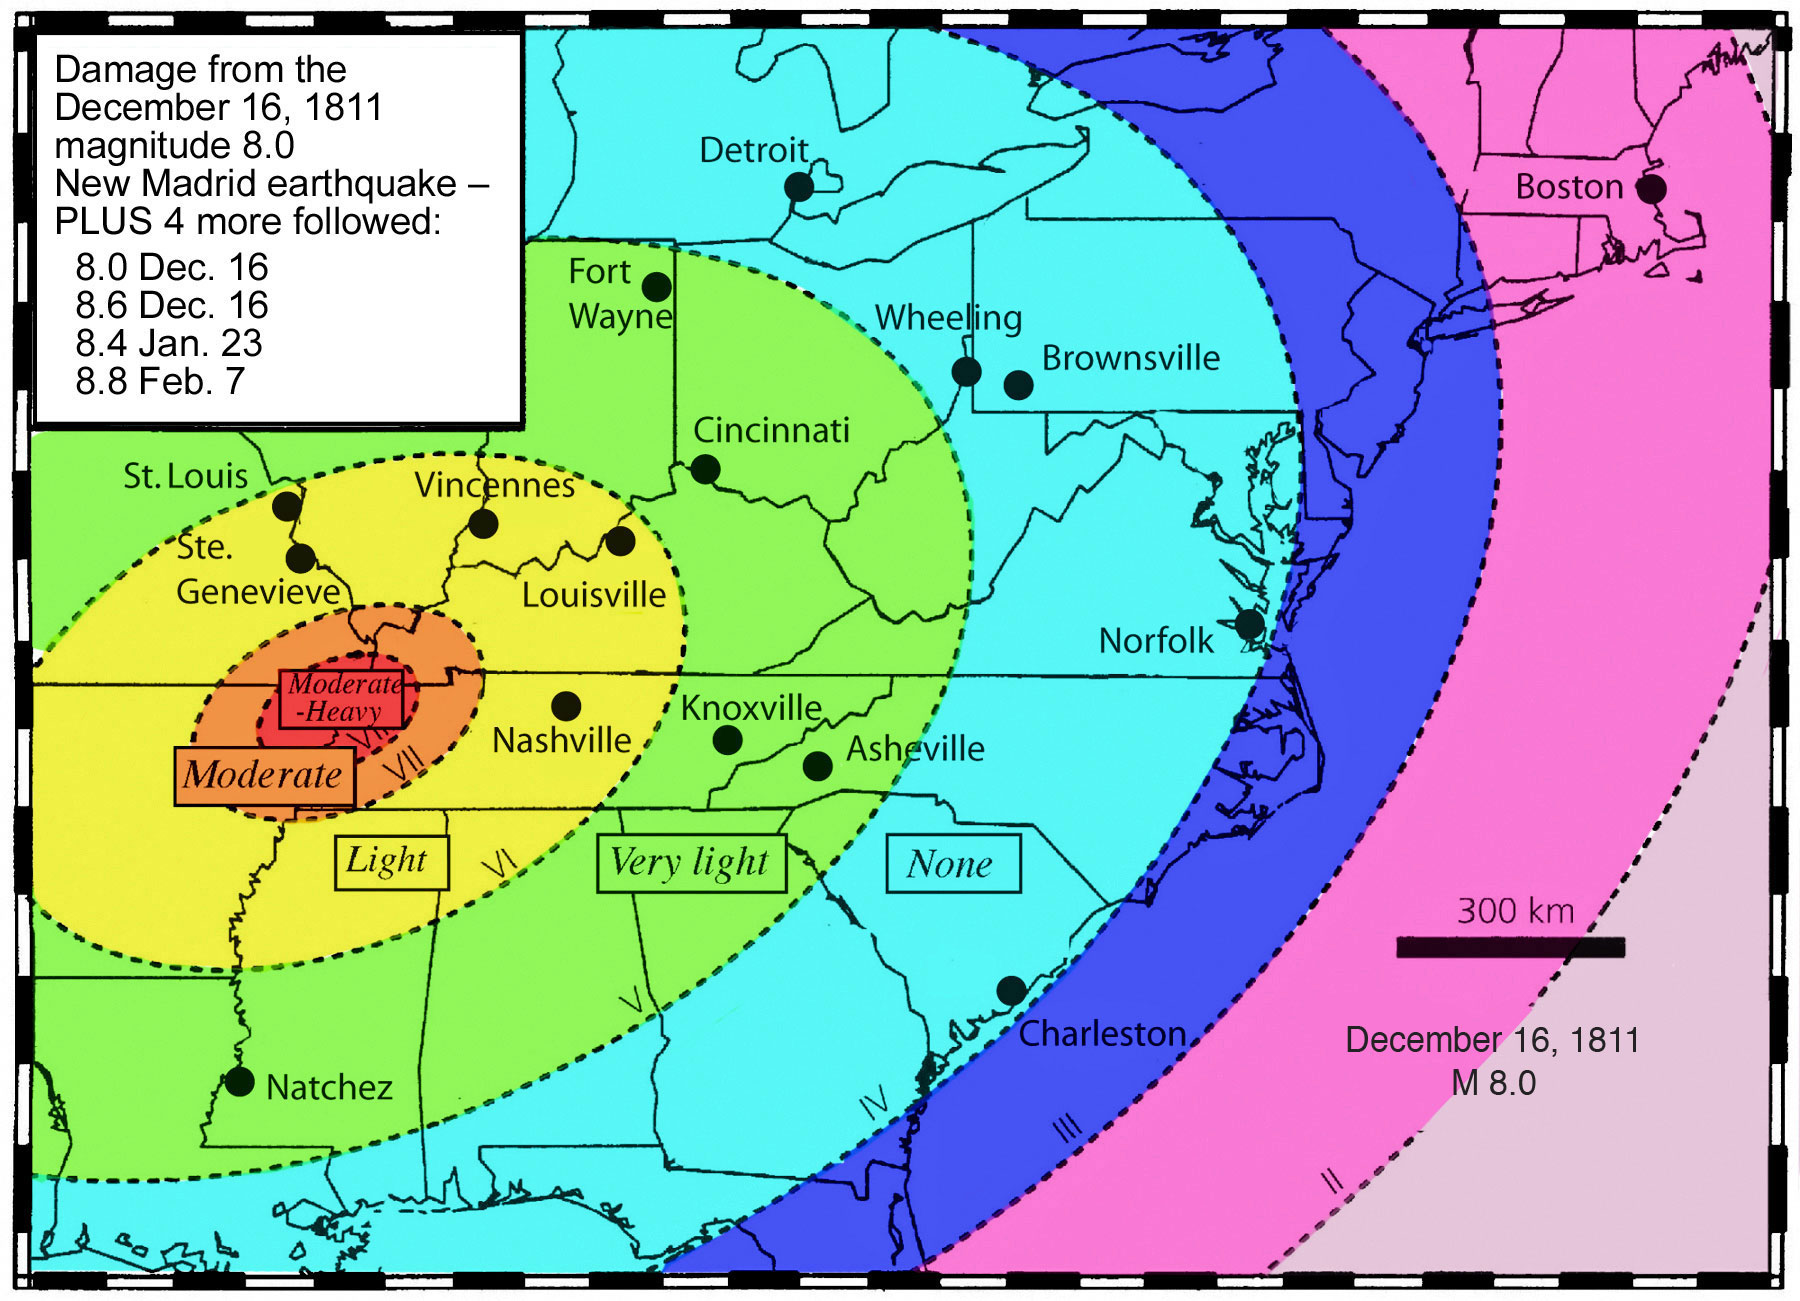 How Many Will In The New Madrid Earthquake Cleveland Etc Be Calm Prepare Pray Away Help Each Other